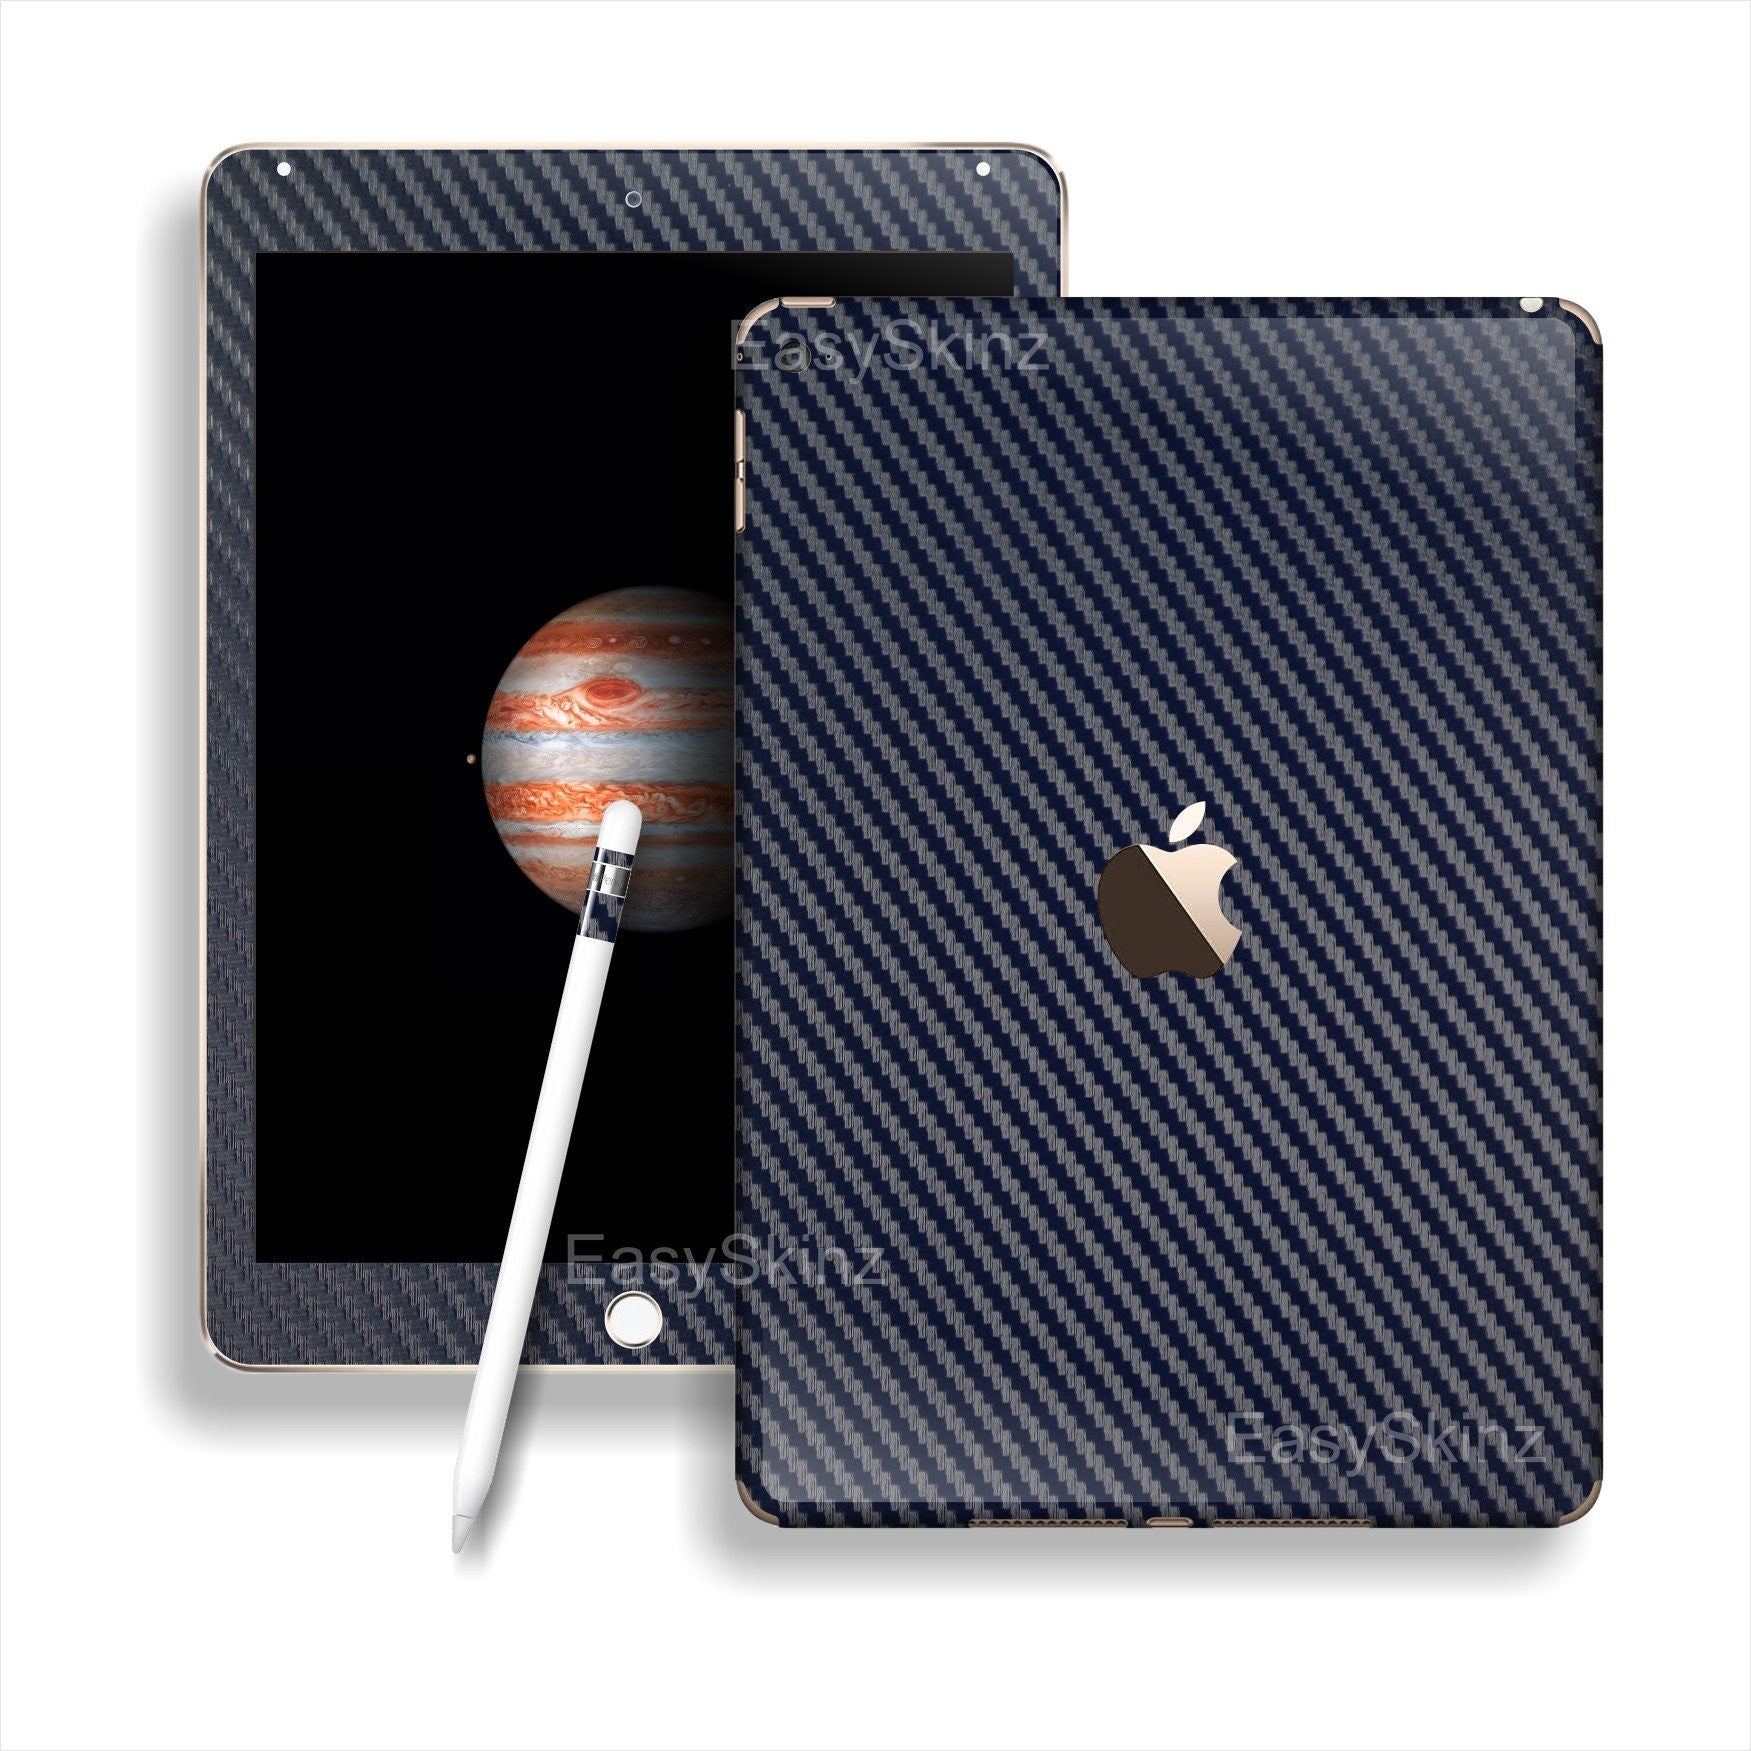 iPad PRO 3D Textured NAVY BLUE CARBON Fibre Fiber Skin Wrap Sticker Decal Cover Protector by EasySkinz